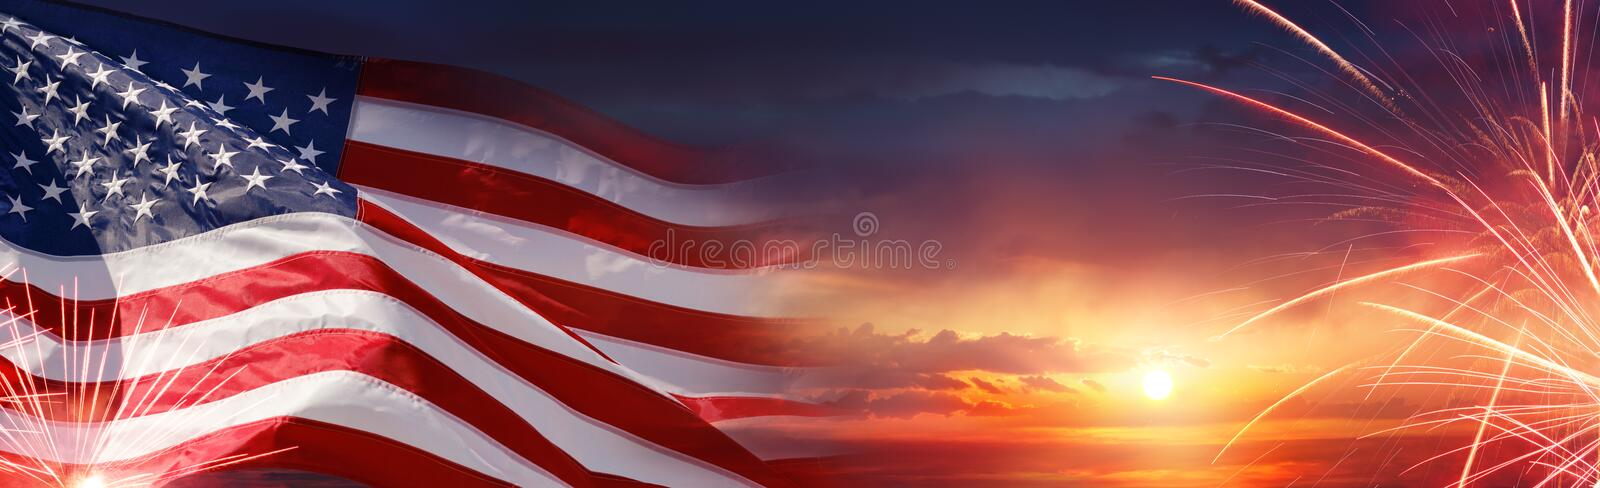 American Celebration - Usa Flag And Fireworks royalty free stock images